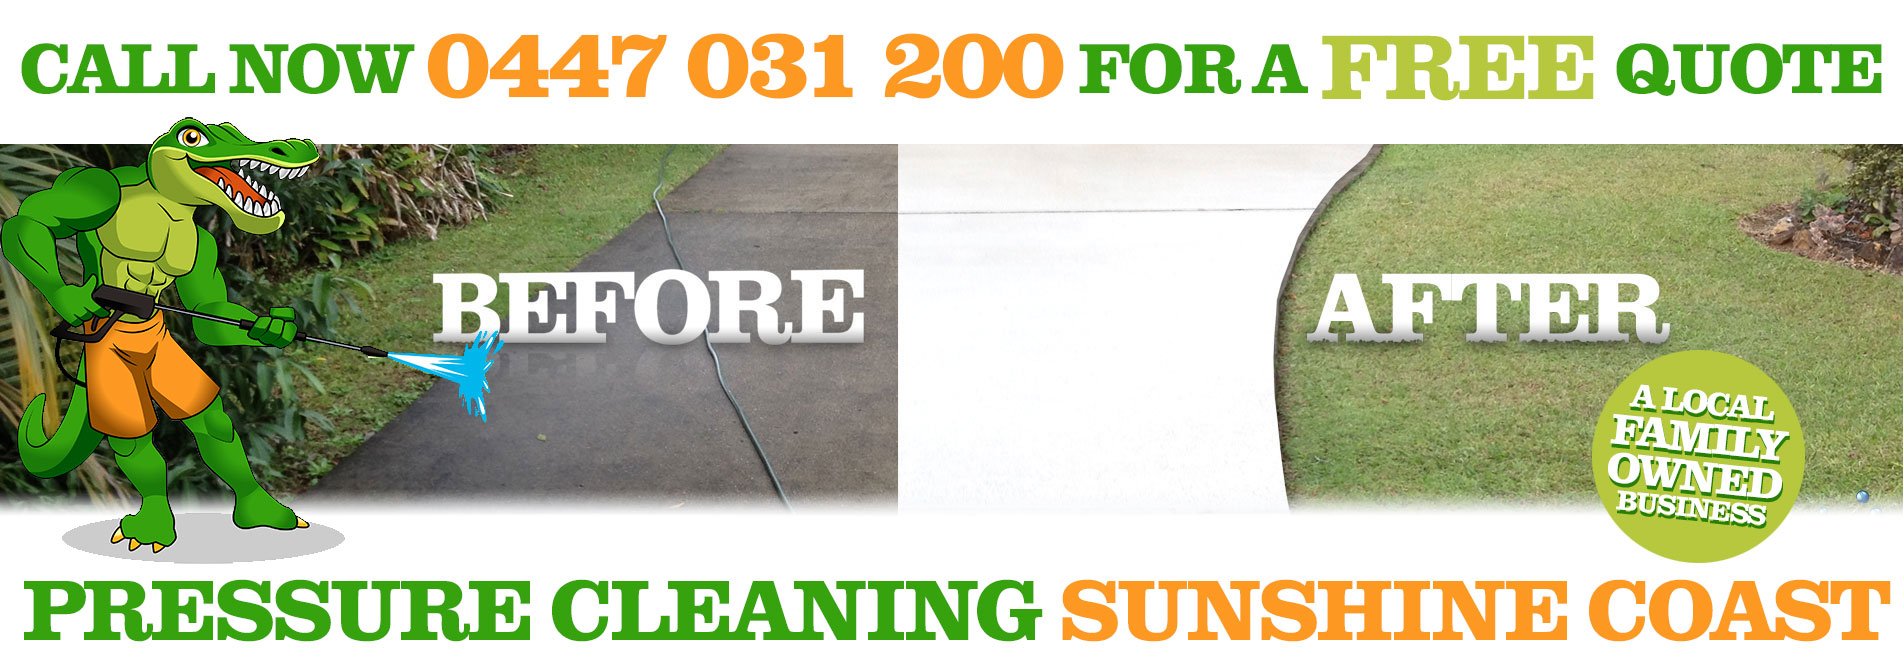 Pressure Cleaning Sunshine Coast Website Home Page Slide 01